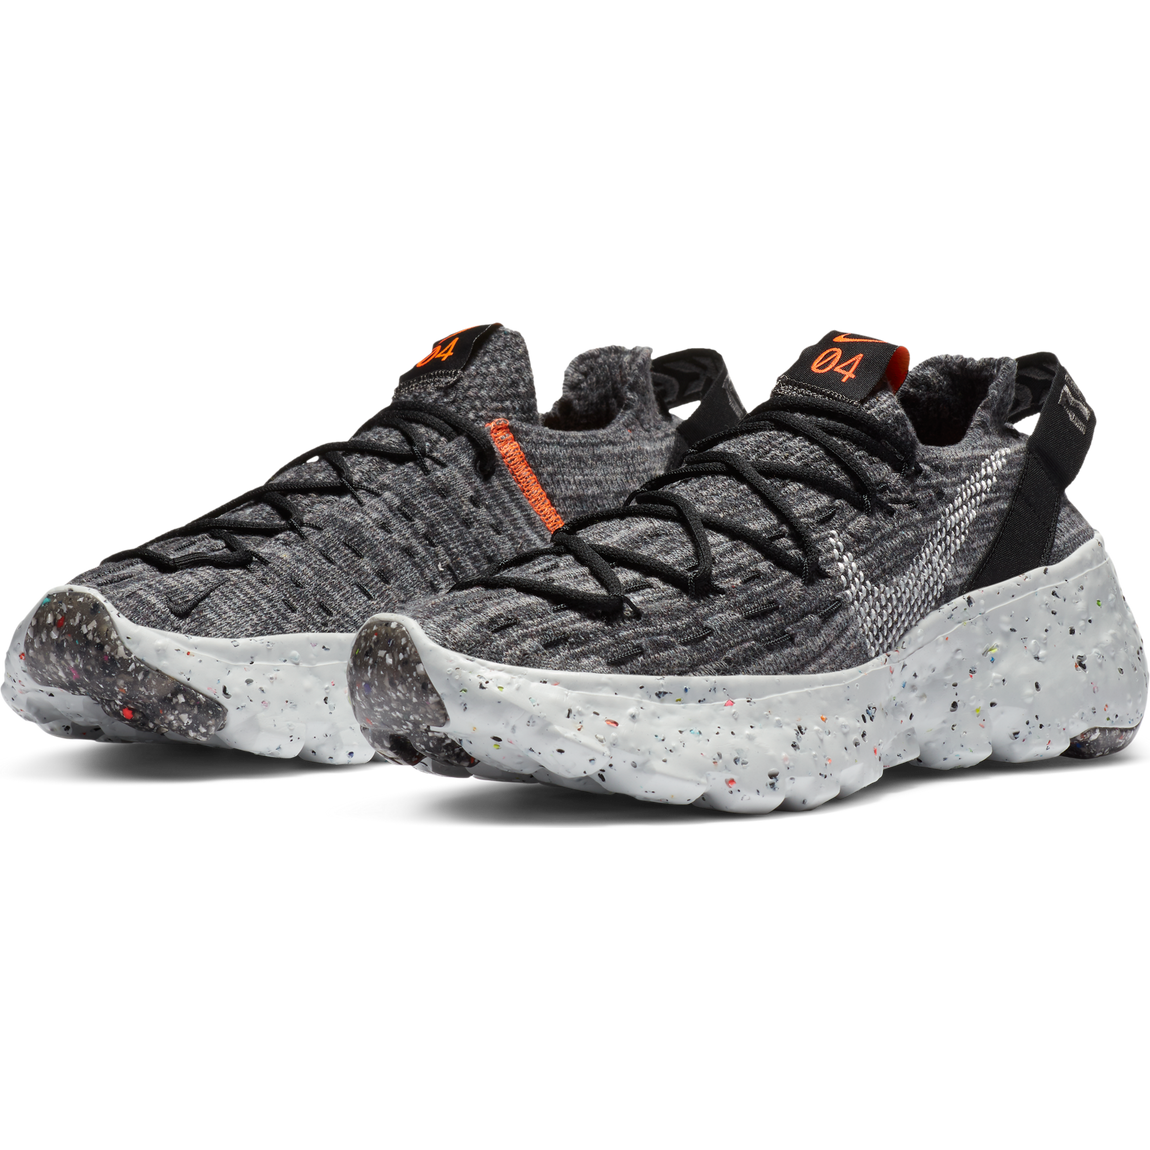 Nike Women's Space Hippie 04 (Iron Grey/Photon Dust-Black) - Nike Women's Space Hippie 04 (Iron Grey/Photon Dust-Black) -